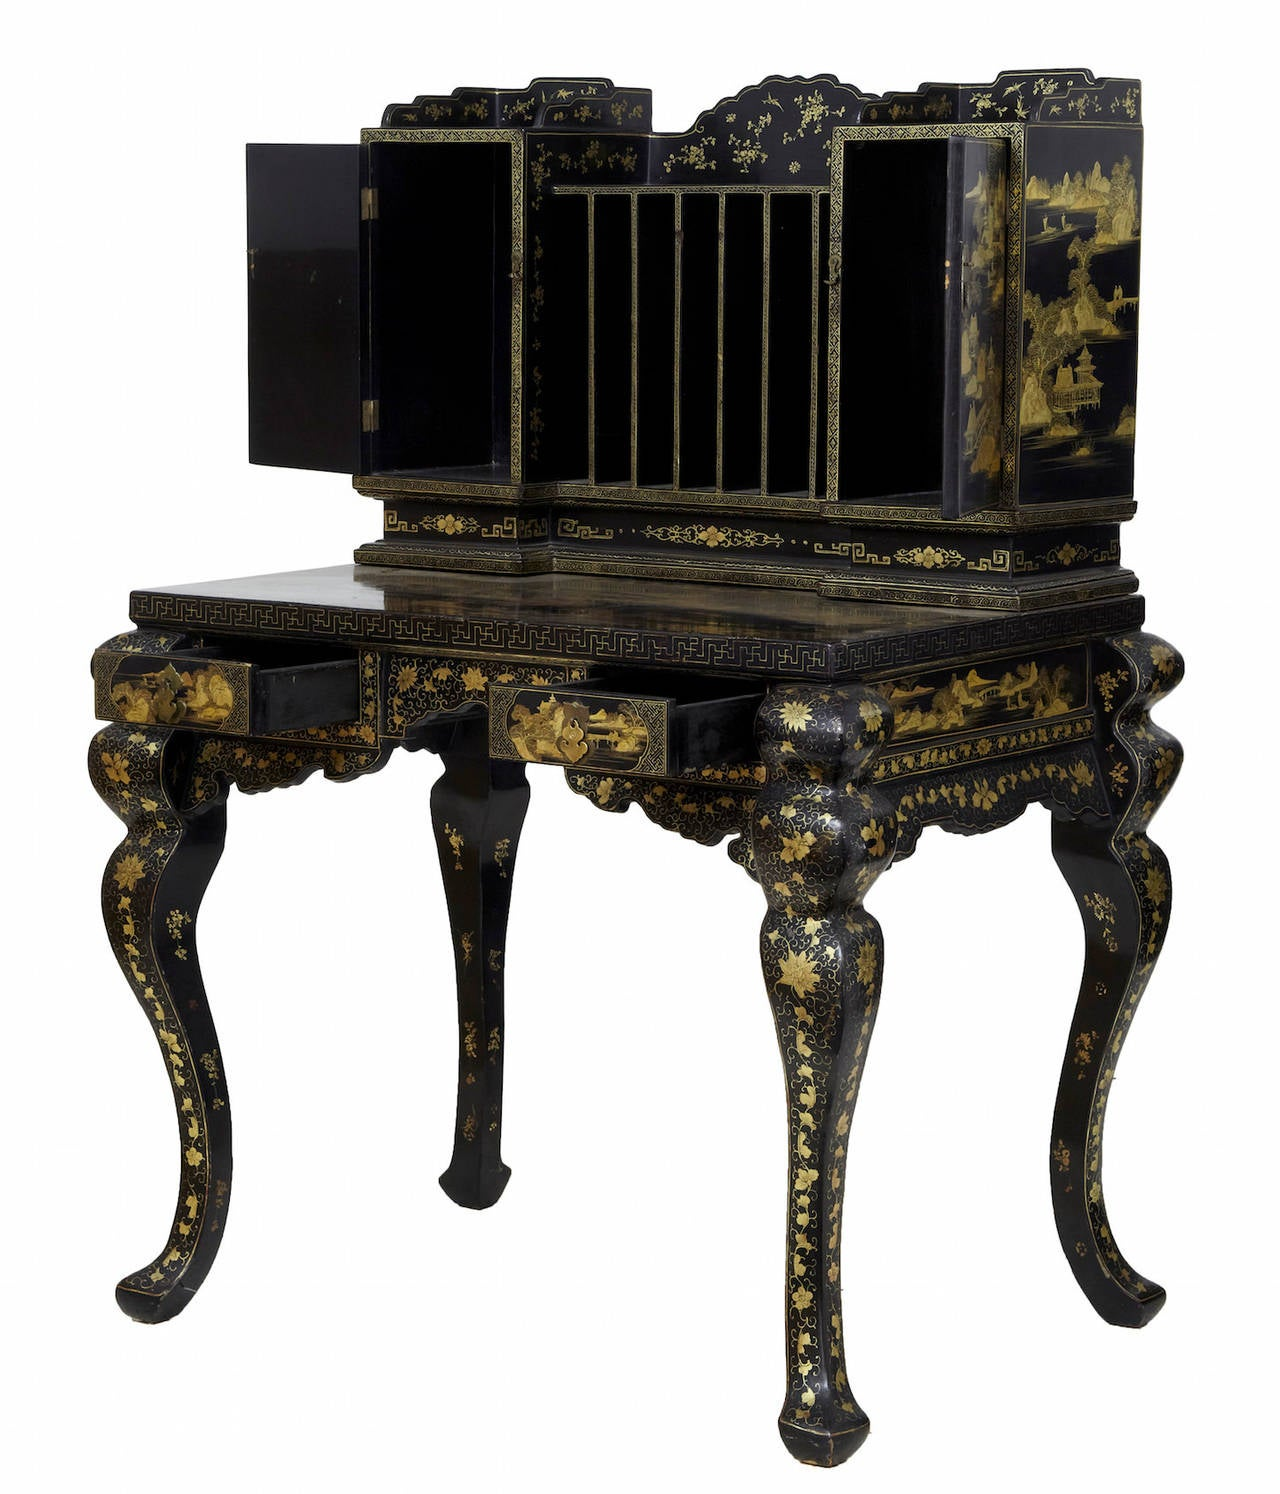 1920s Oriental Black Lacquered and Gold Decorated Desk